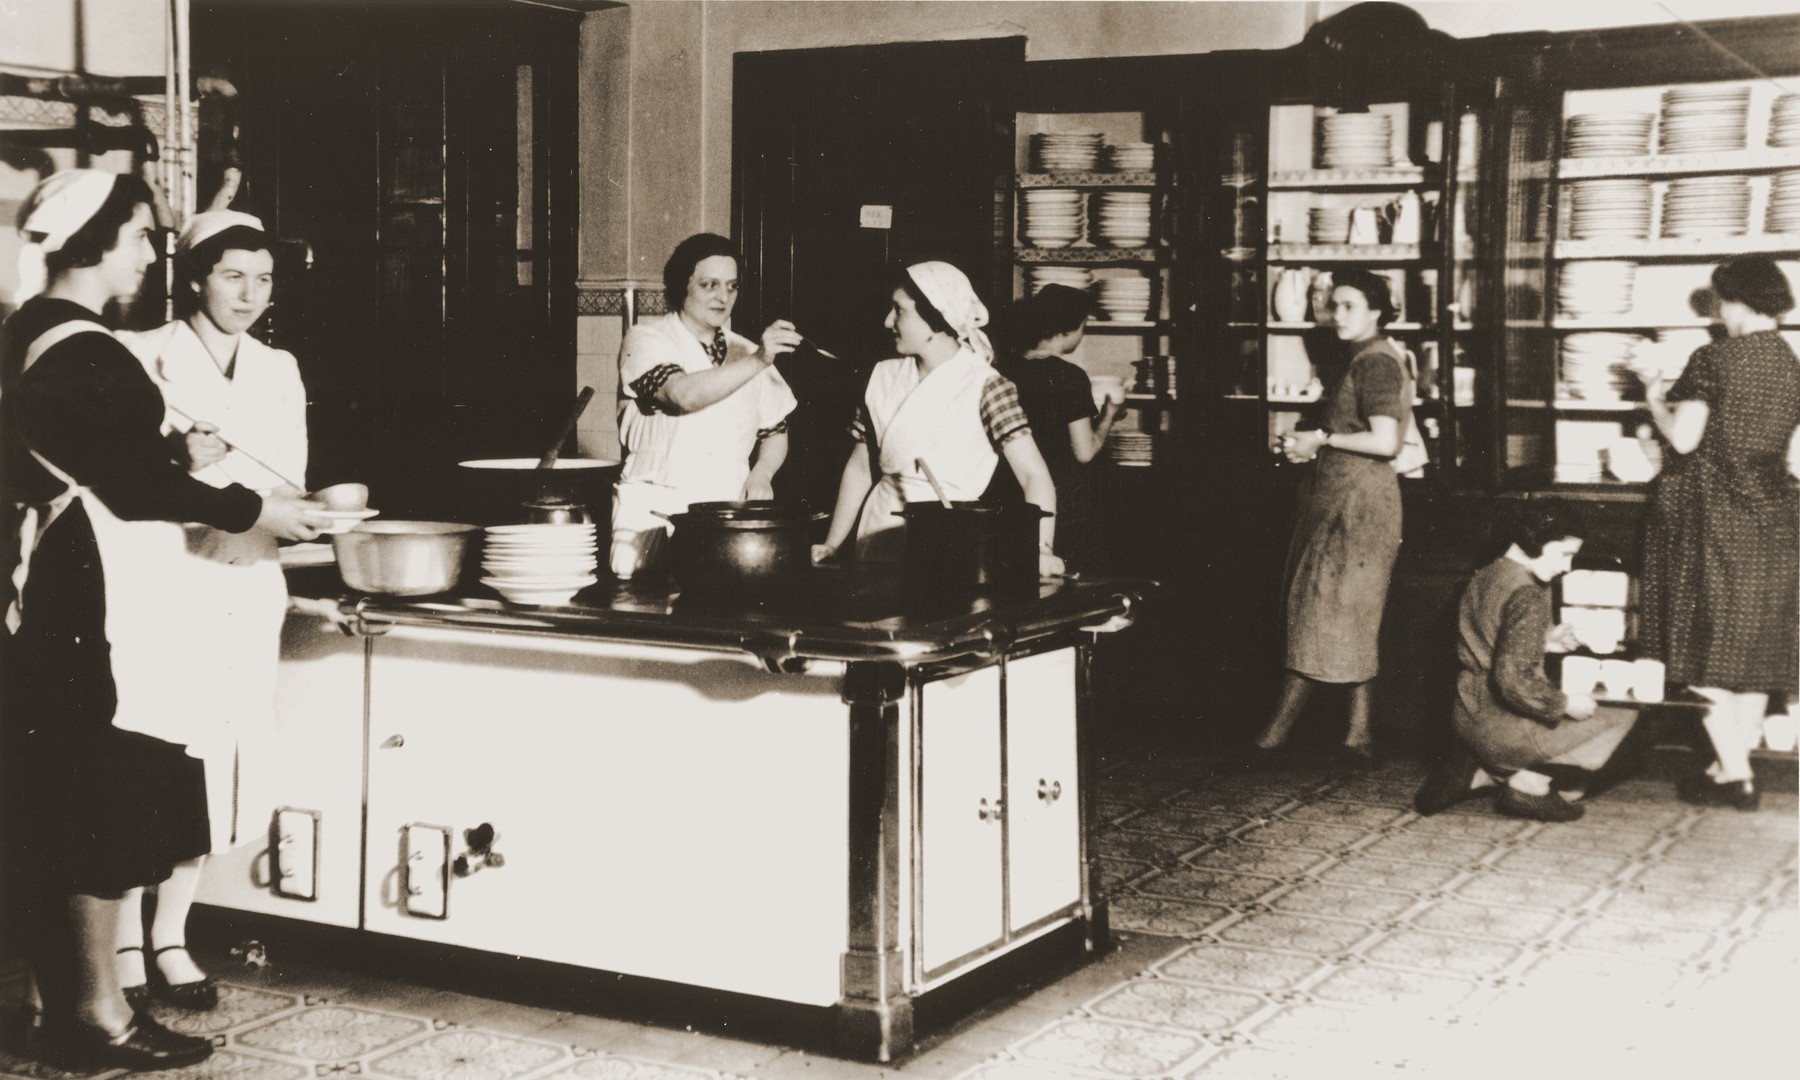 The cooks and kitchen staff at the Baruch Auerbach Jewish orphanage in Berlin prepare a meal.